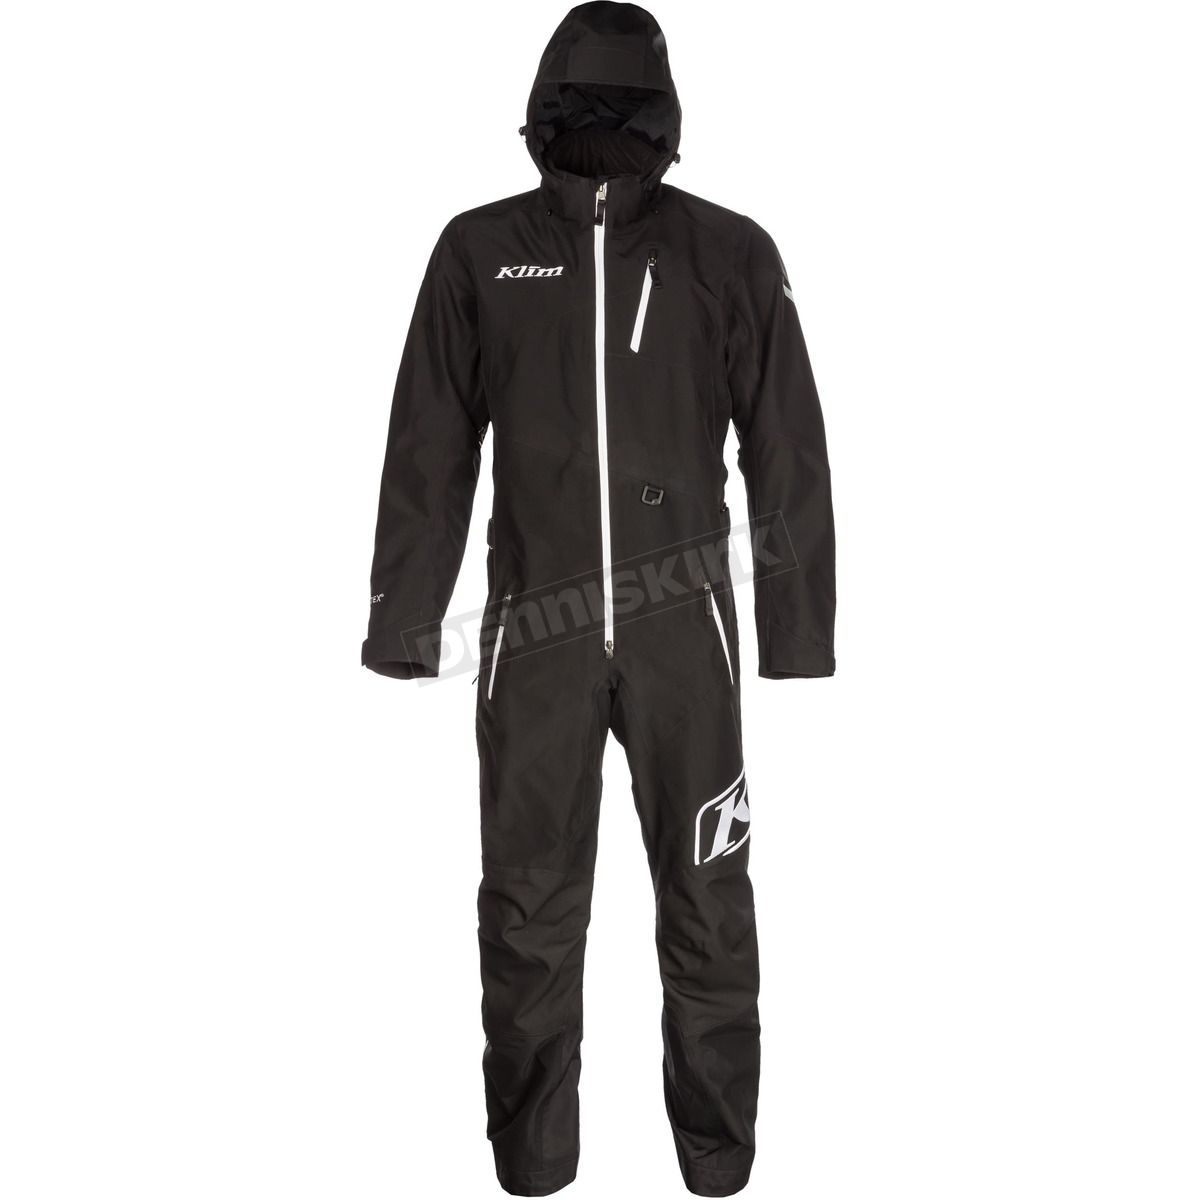 075939db Klim Black Ripsa One-Piece Suit | Dennis Kirk